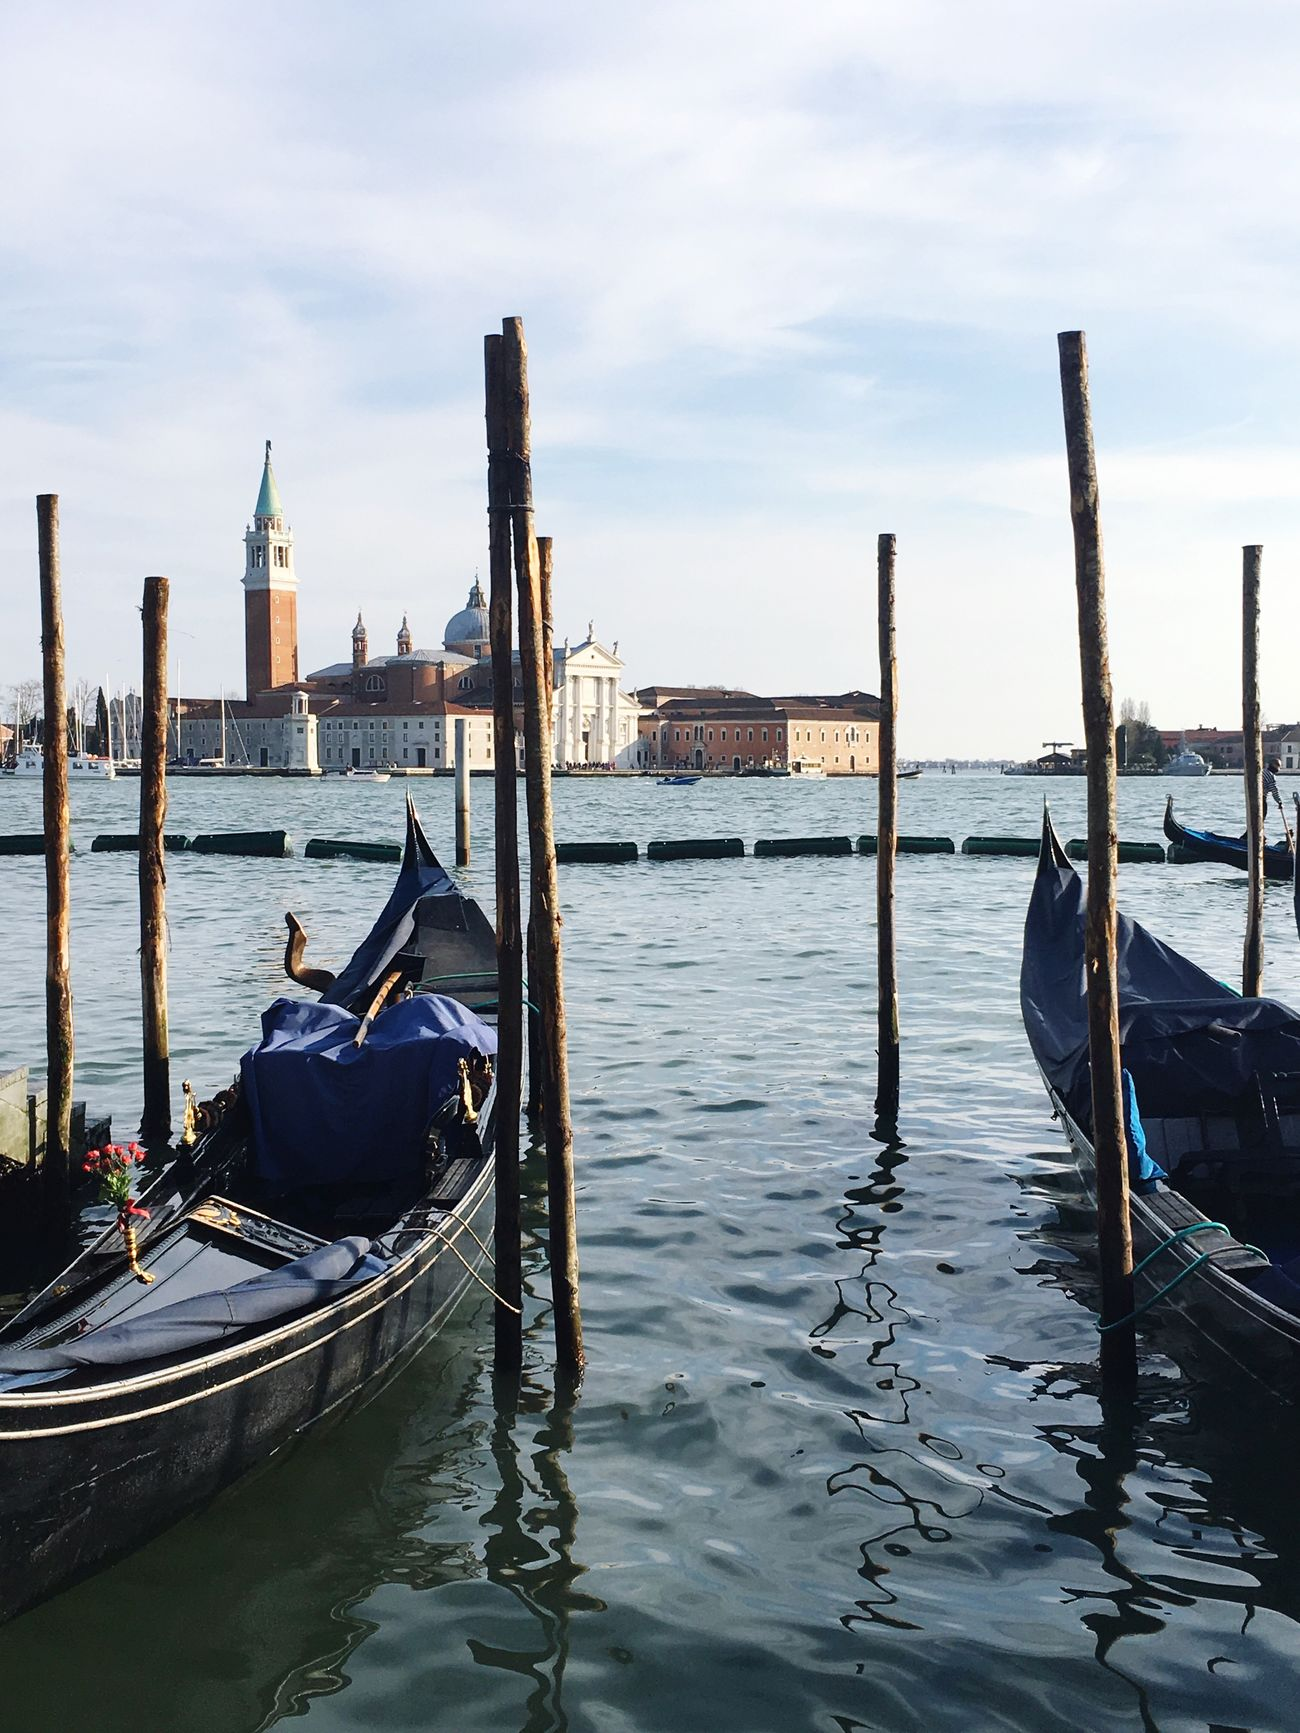 Cultures Gondola - Traditional Boat Architecture Mode Of Transport Transportation Nautical Vessel Canal Water Travel Travel Destinations Sky Wooden Post Moored Day Gondolier Gondola City Venice Venice, Italy Carnival